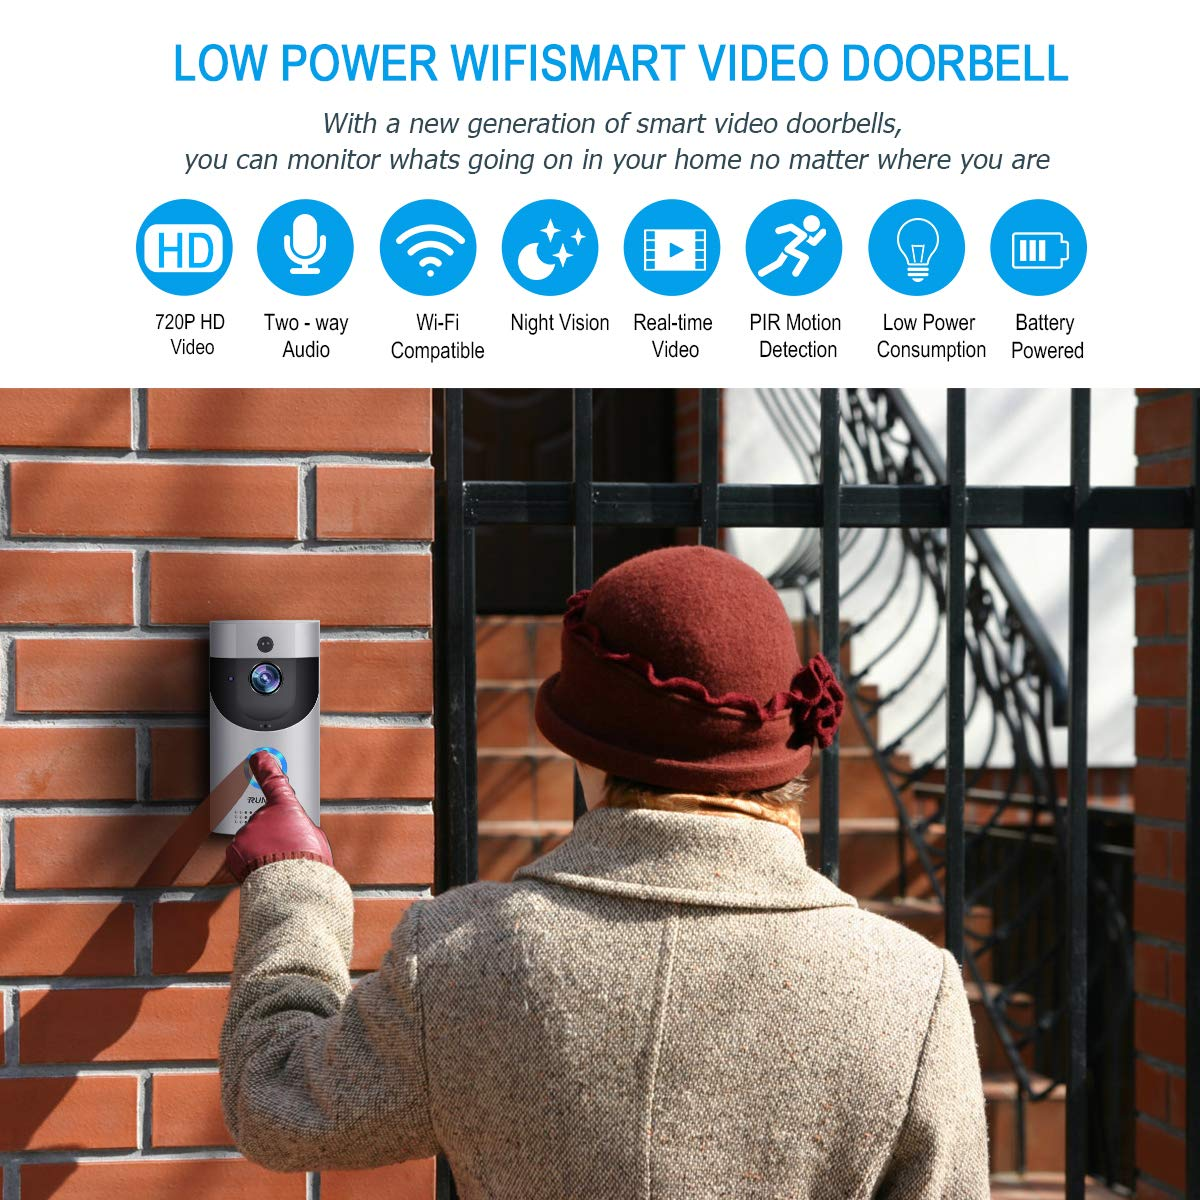 Wireless Smart Doorbell,EwiseeLive WiFi Video Doorbell,720P HD Security Camera with Two-Way Talk &Video,PIR Motion Detection,Night Vision,2 Rechargeable Batteries for iOS Android Google and Smart home by EwiseeLive (Image #6)